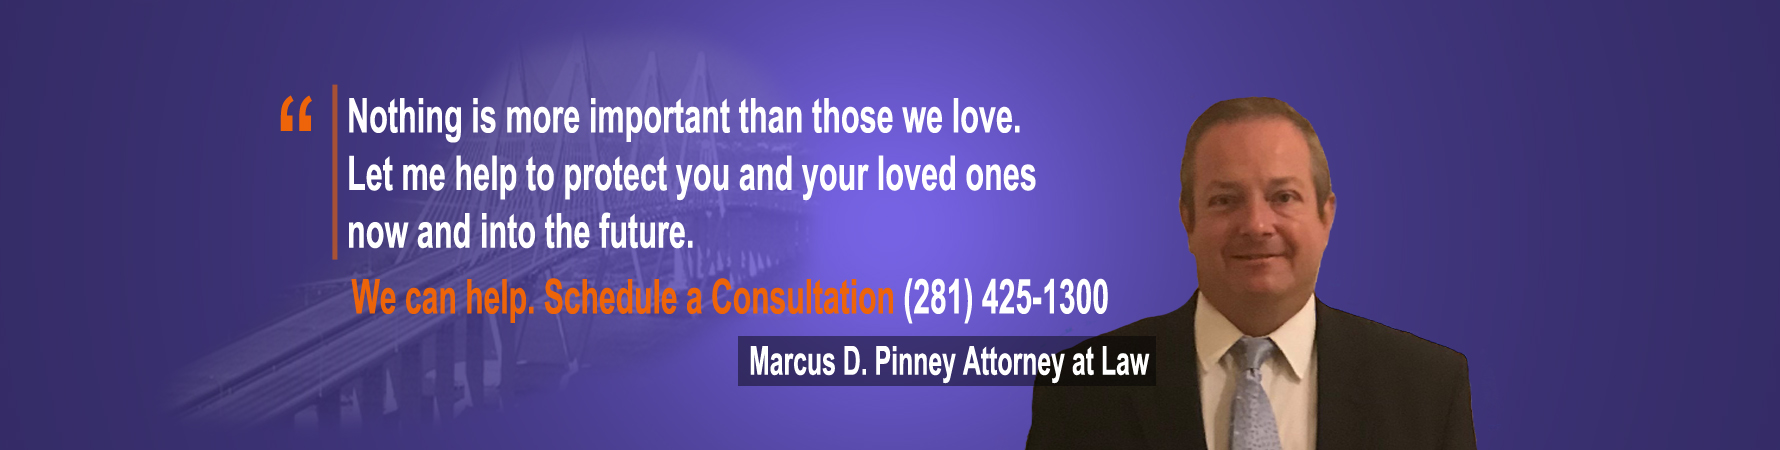 Baytown Lawyer Marcus D. Pinney